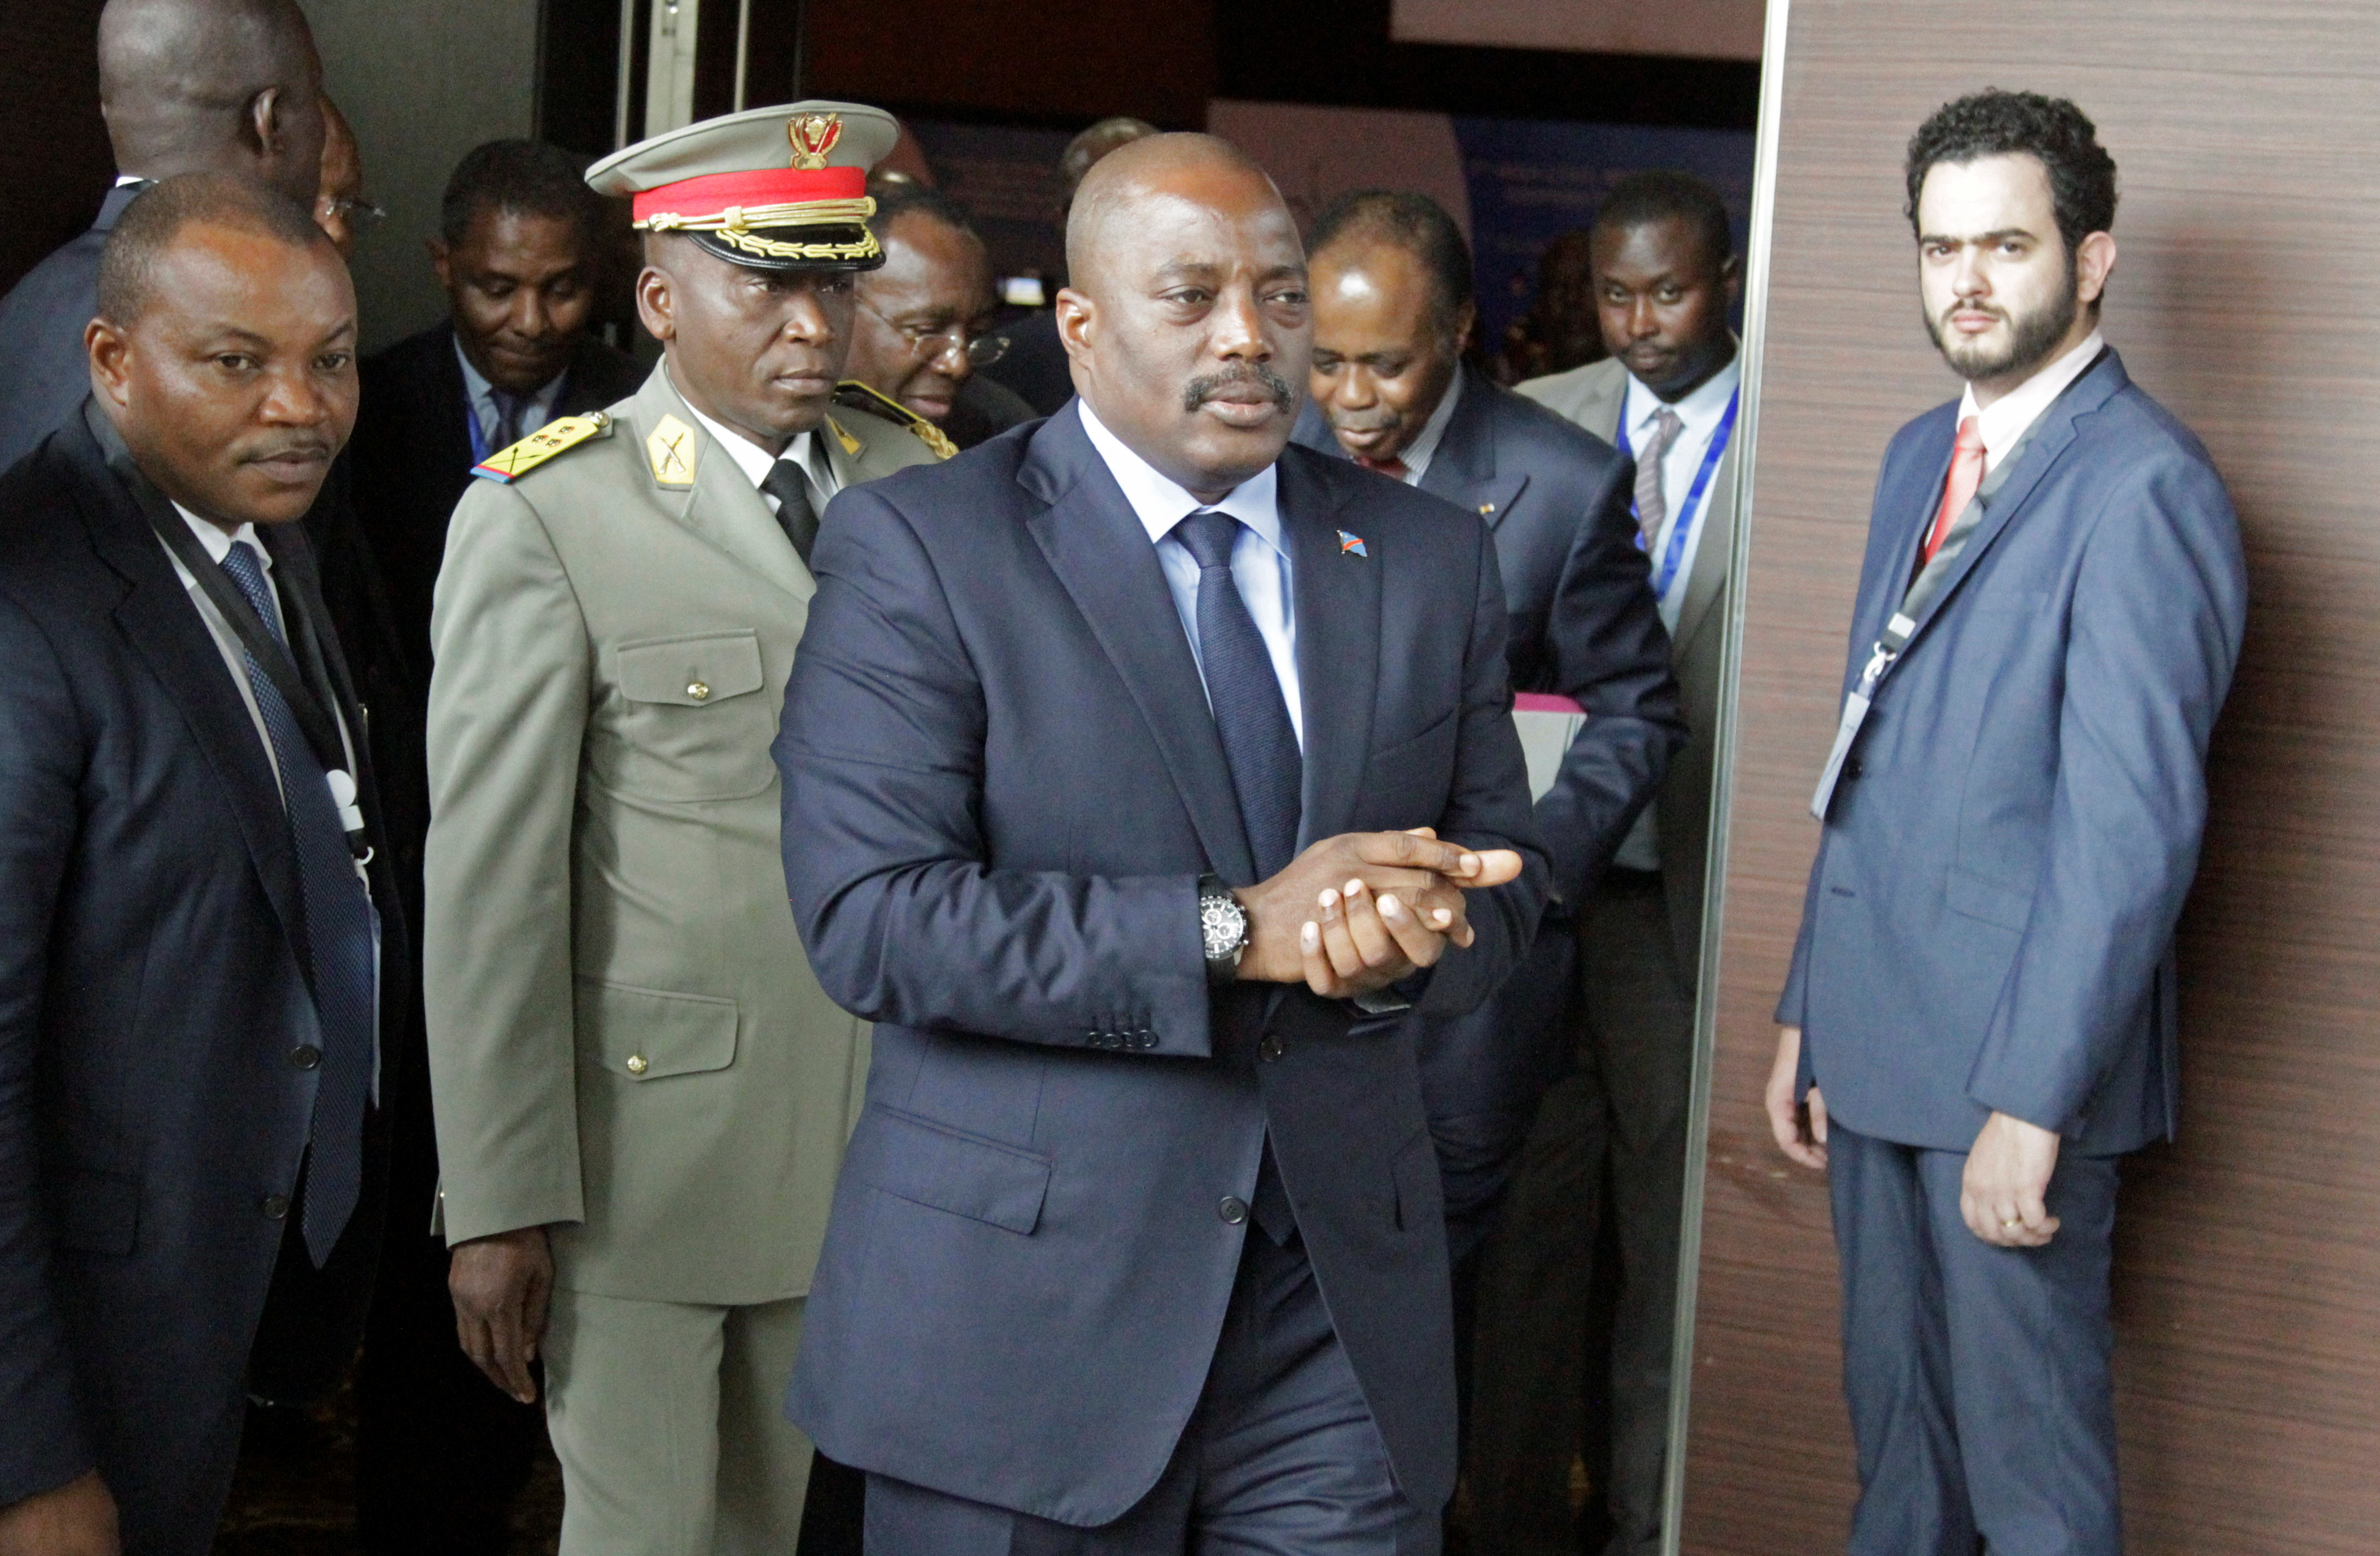 FILE - Democratic Republic of Congo's President Joseph Kabila arrives for a southern and central African leaders' meeting to discuss the political crisis in the Democratic Republic of Congo in Luanda, Angola.